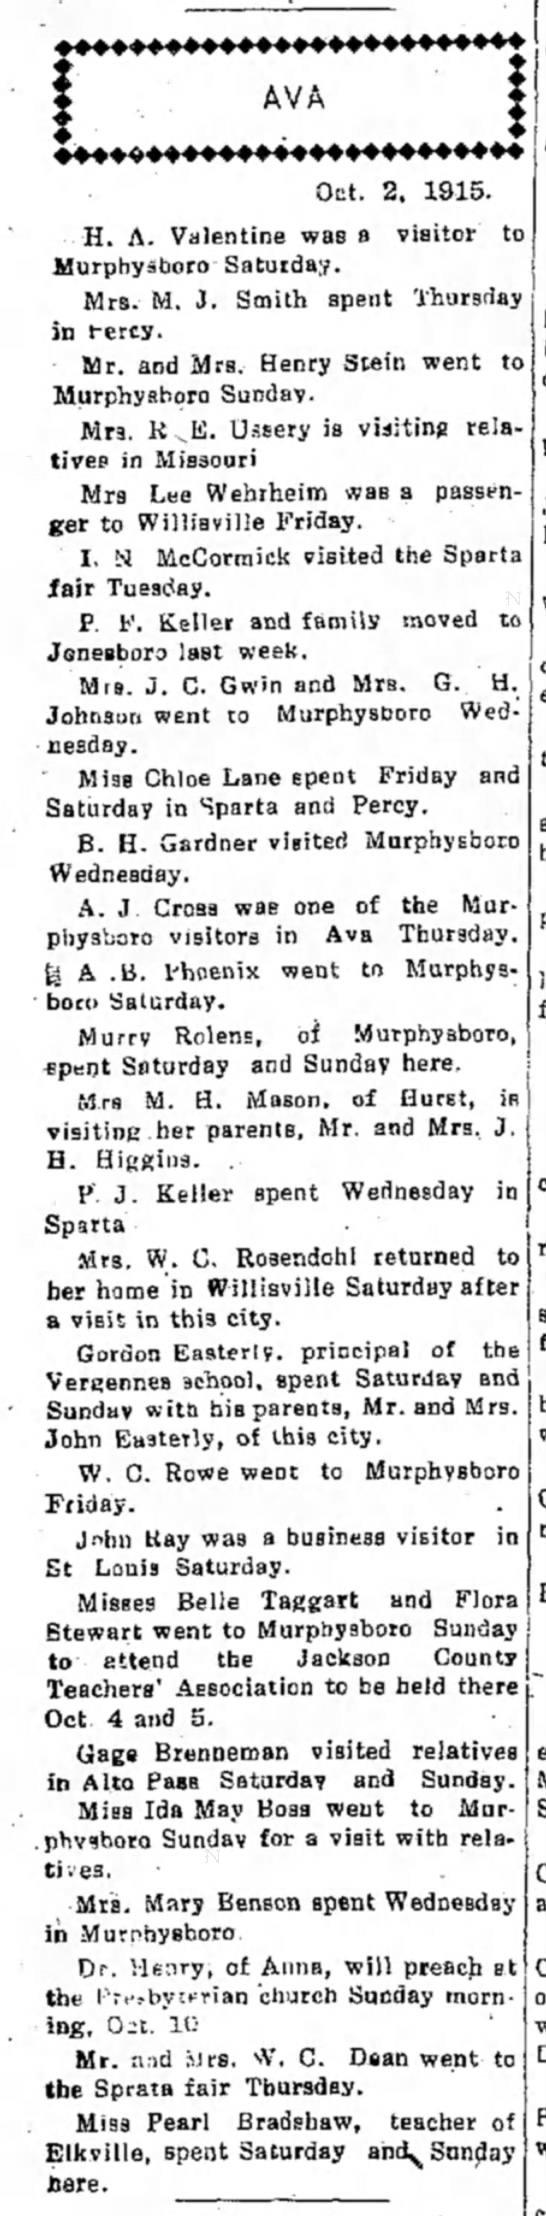 Ava News - Oct. 2. 1915. H. A. Valentine was a visitor to...